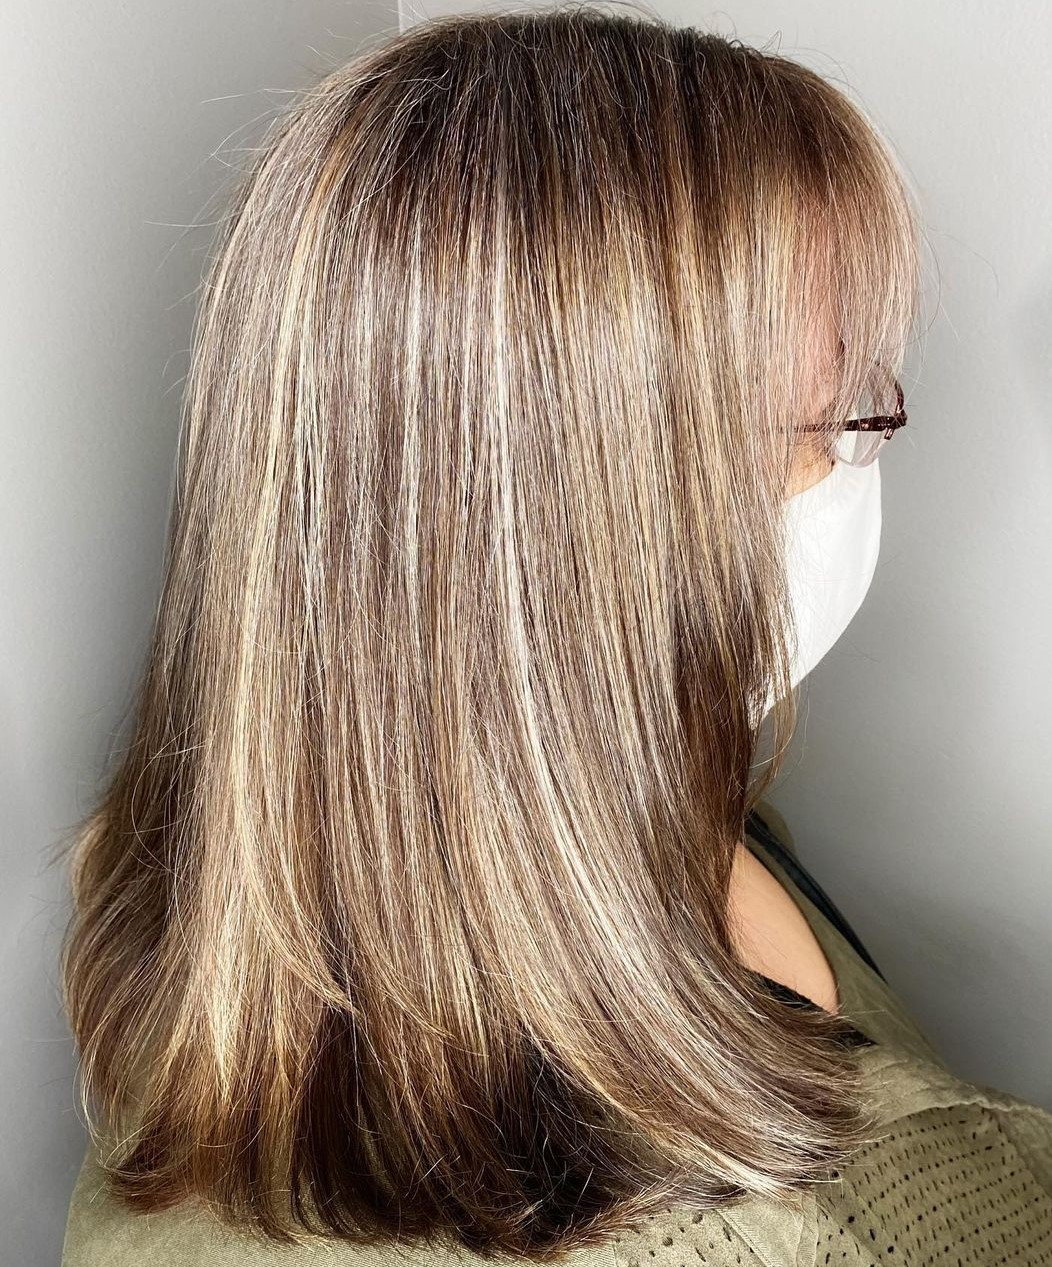 Long Hairstyle for Heavy-Set Women